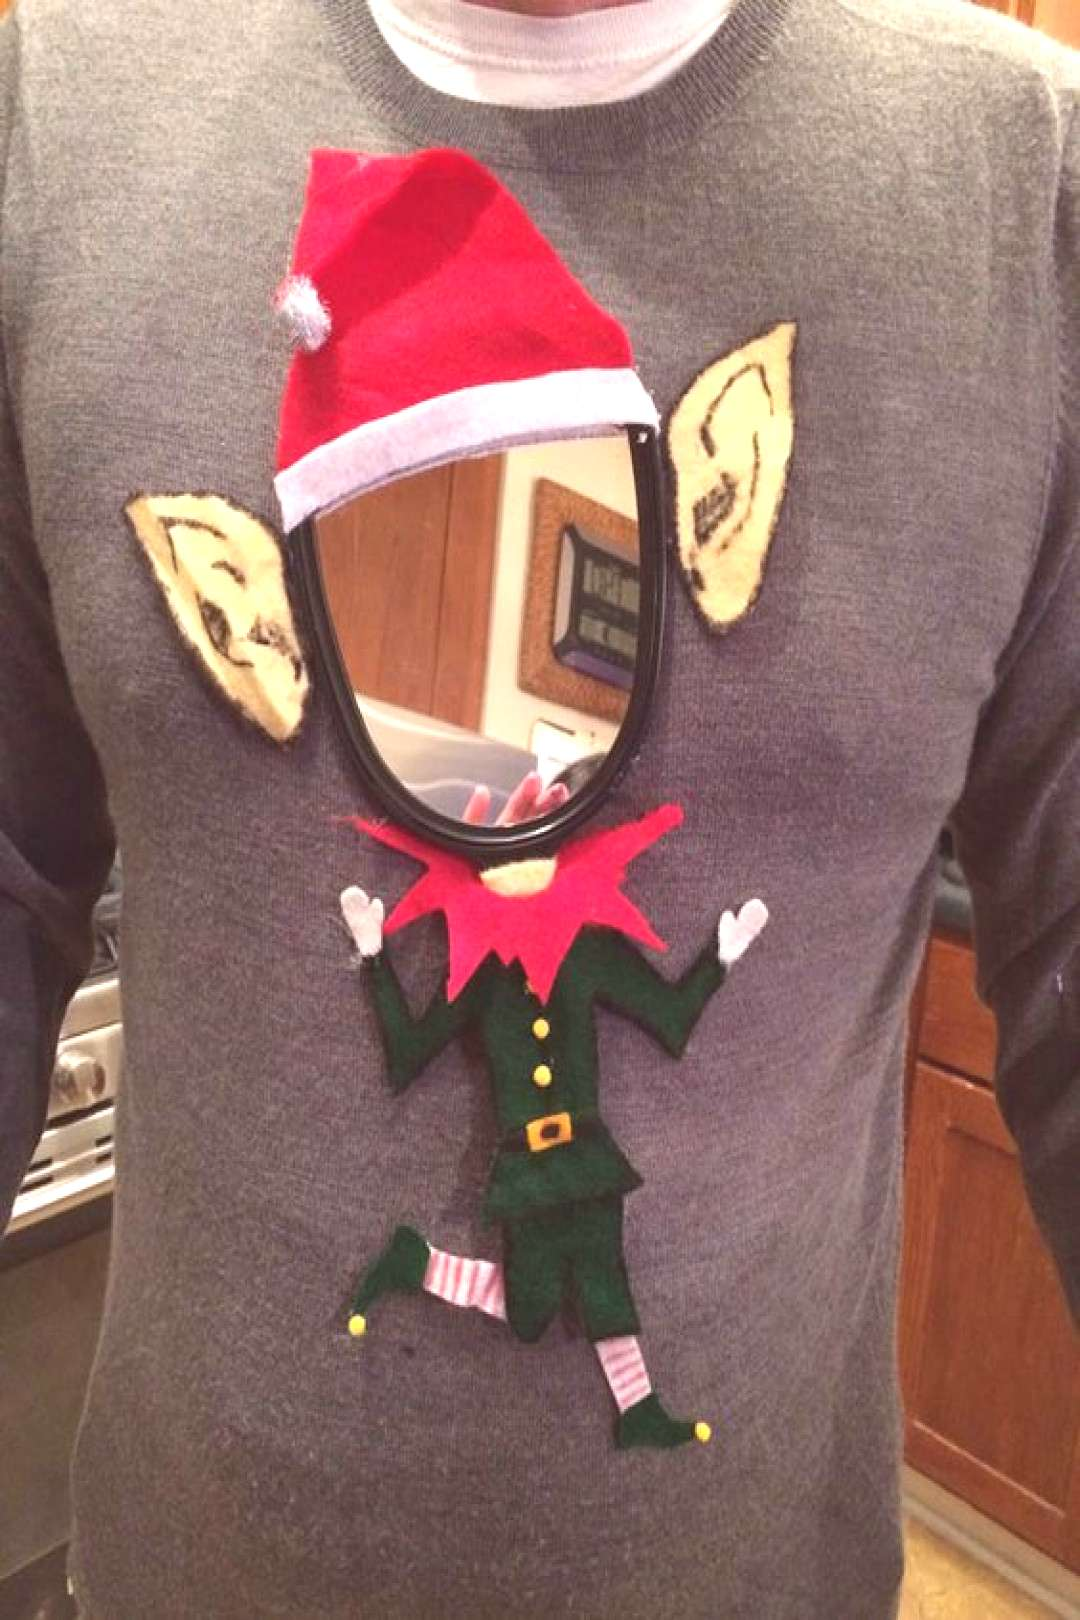 51 Ugly Christmas Sweater Ideas So You Can Be Gaudy and Festive - Page 3 of 3